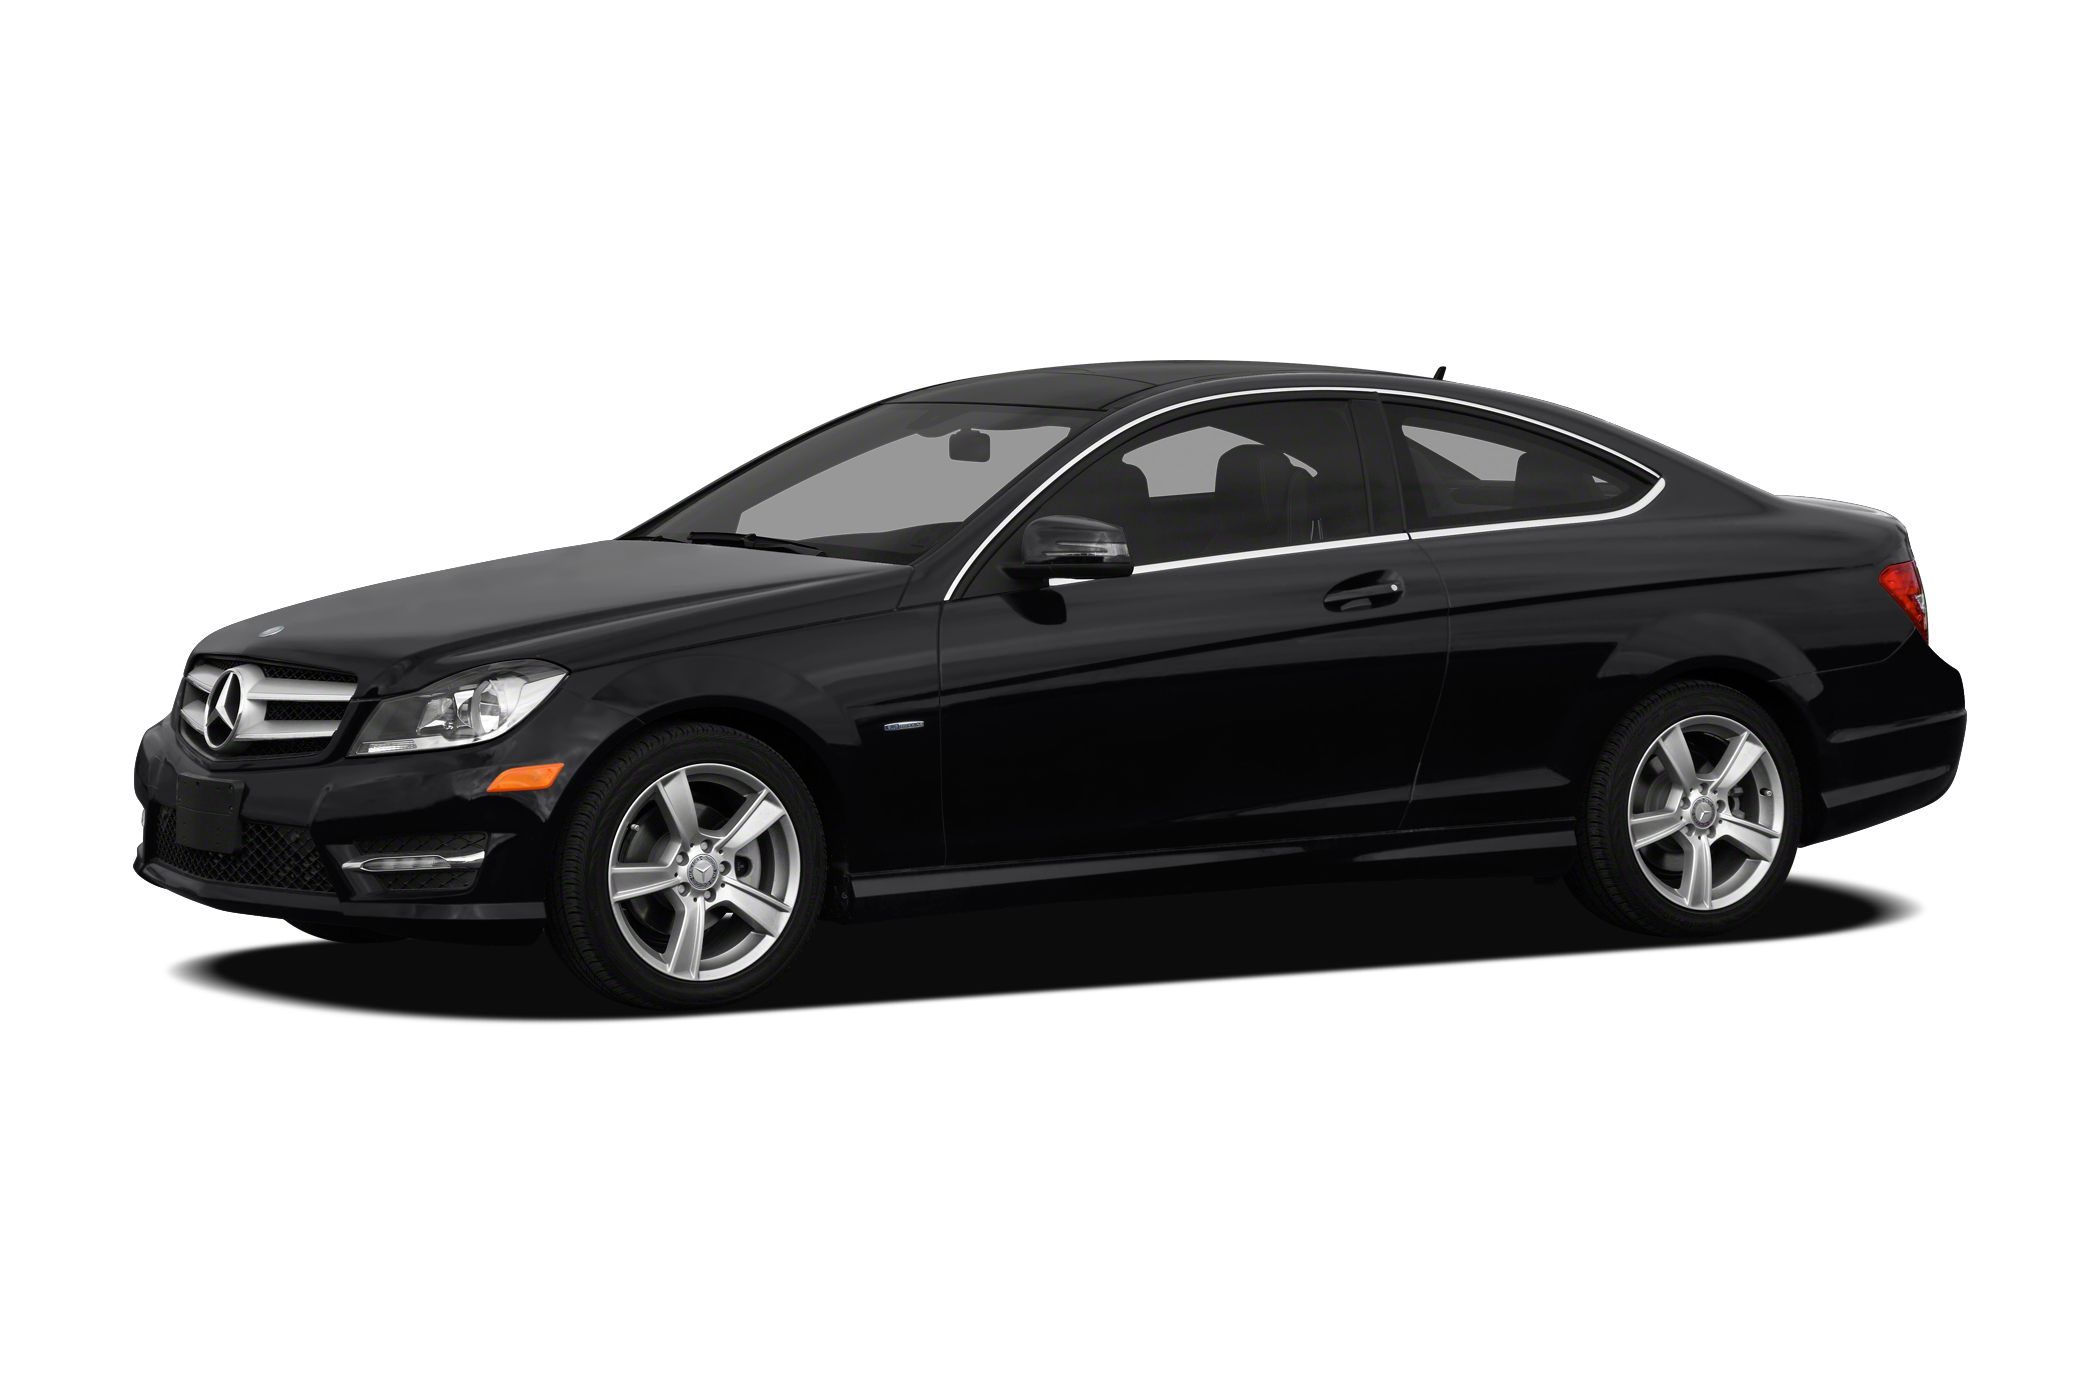 2012 nissan altima 2 5 s 2dr coupe prices for 2012 mercedes benz c350 price